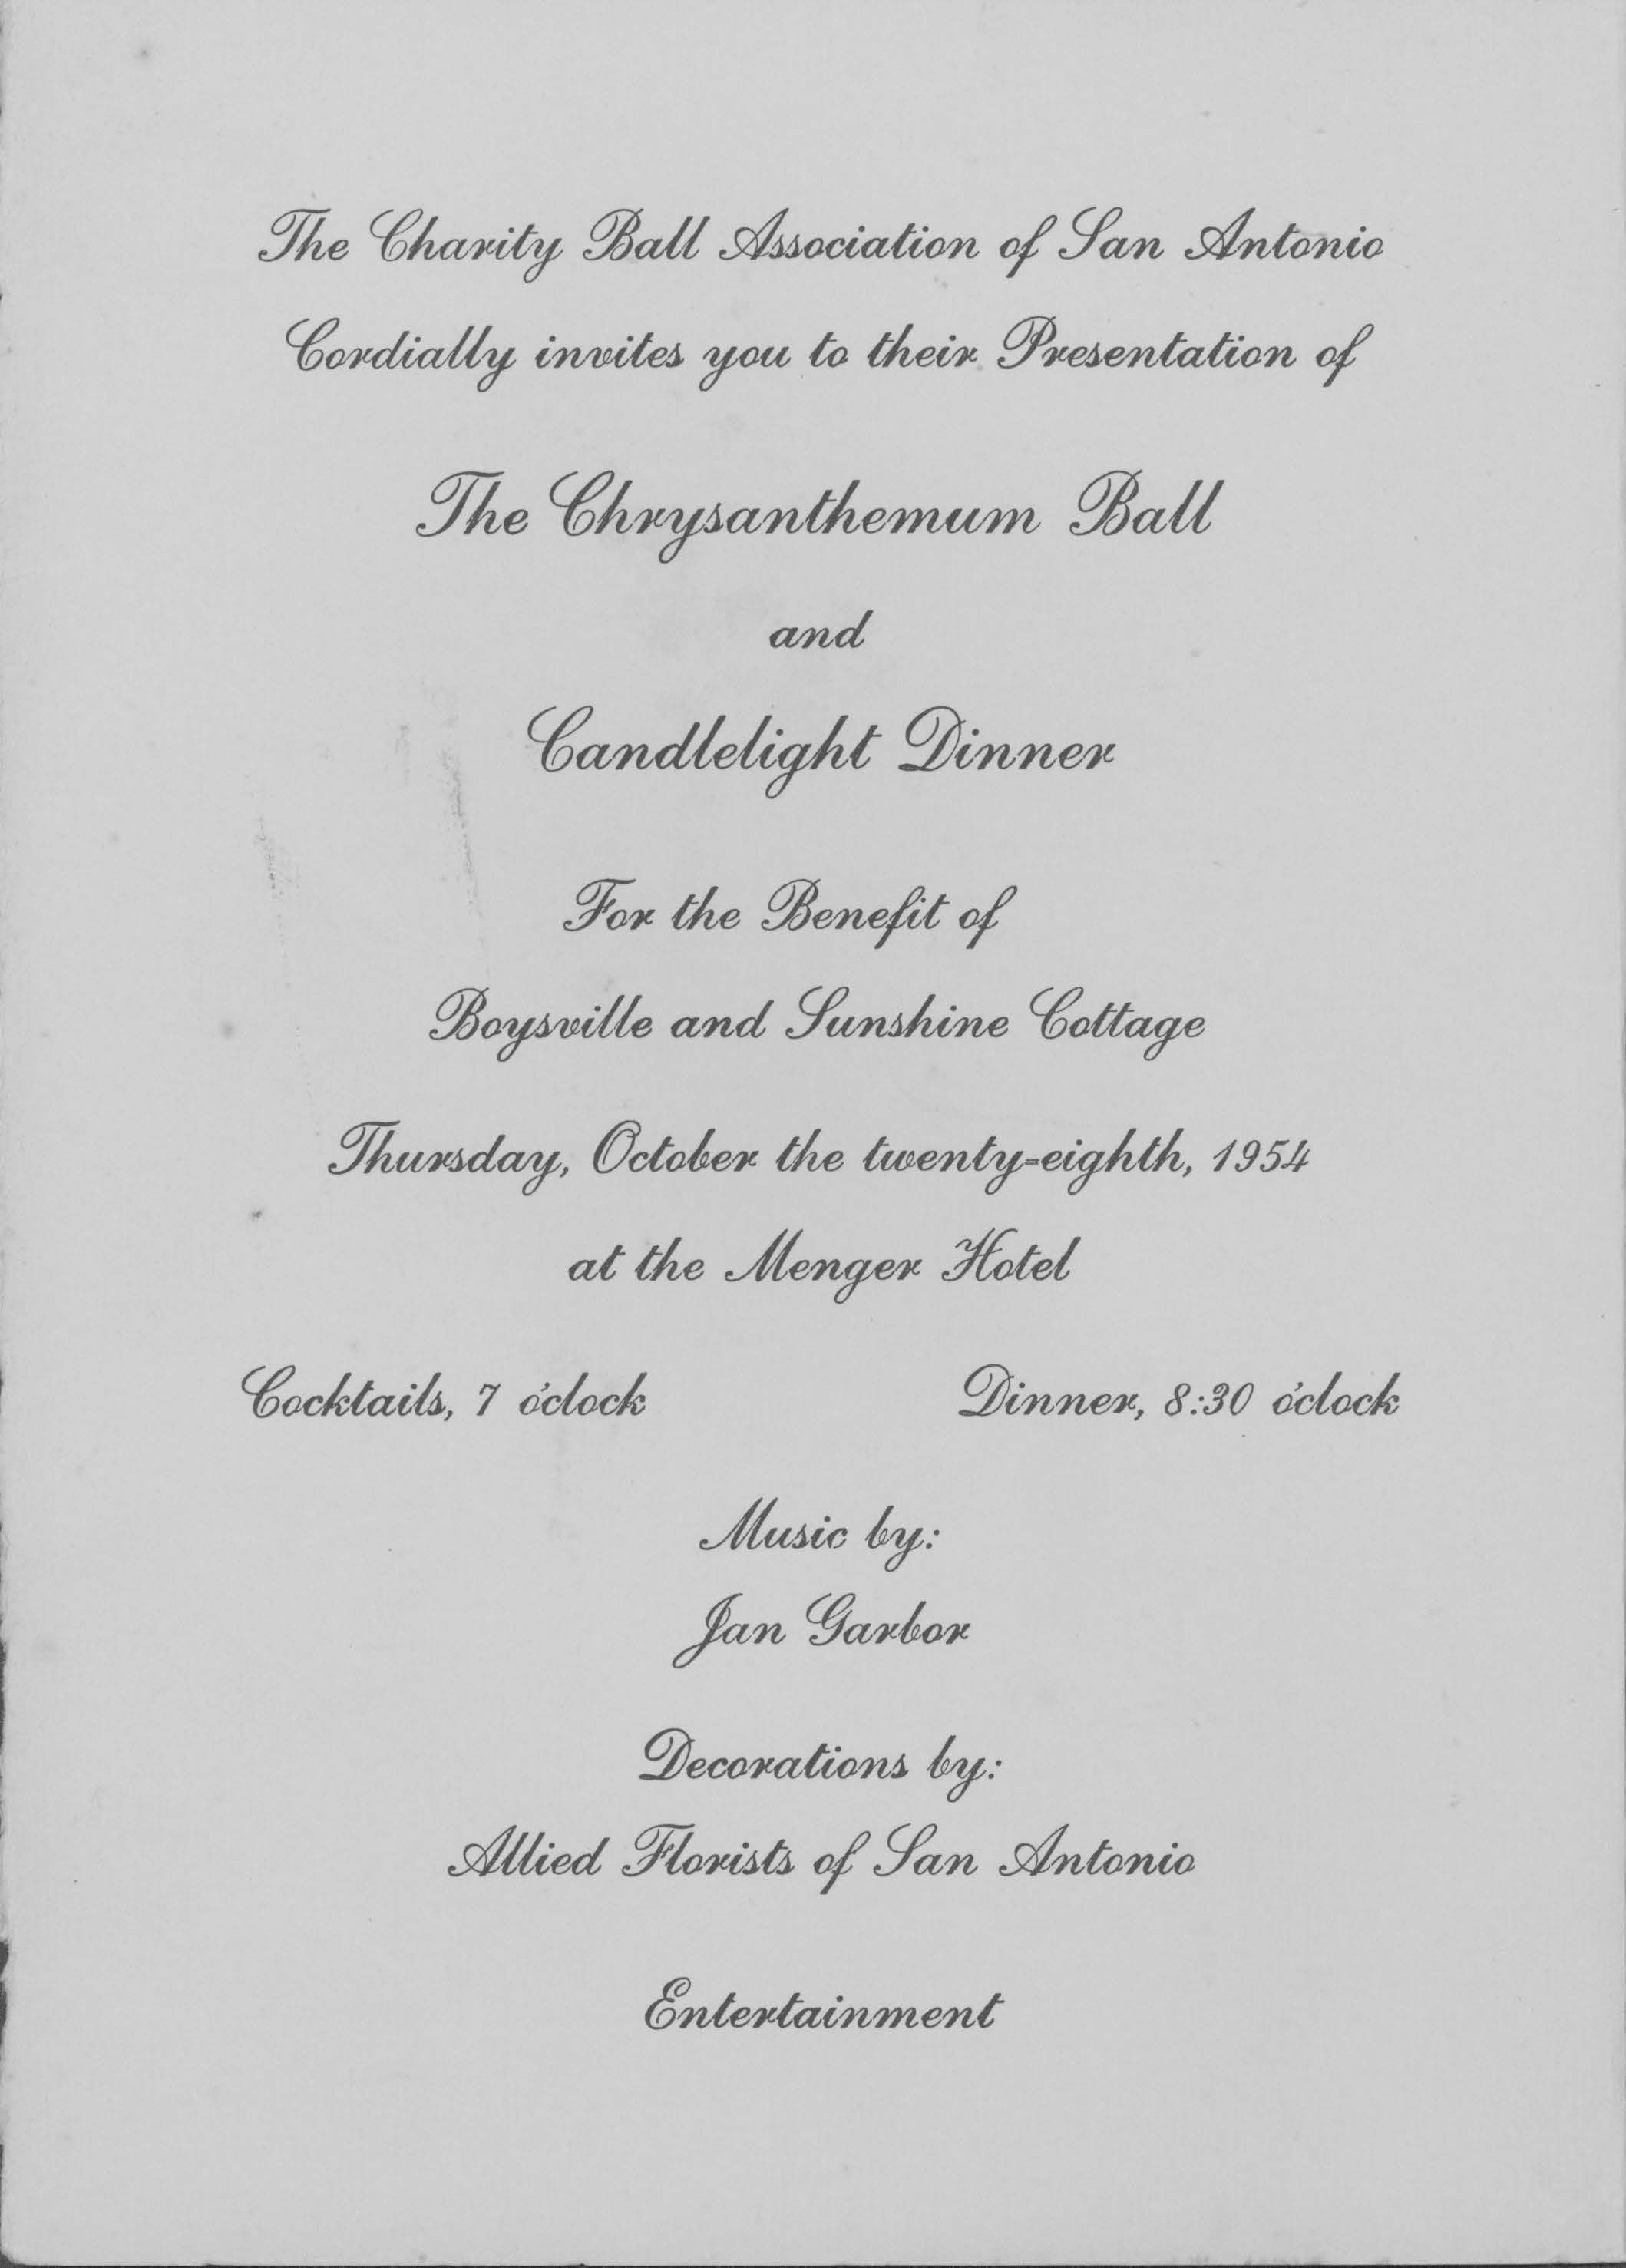 Charity Ball Invitation. UTSA Libraries Special Collections.